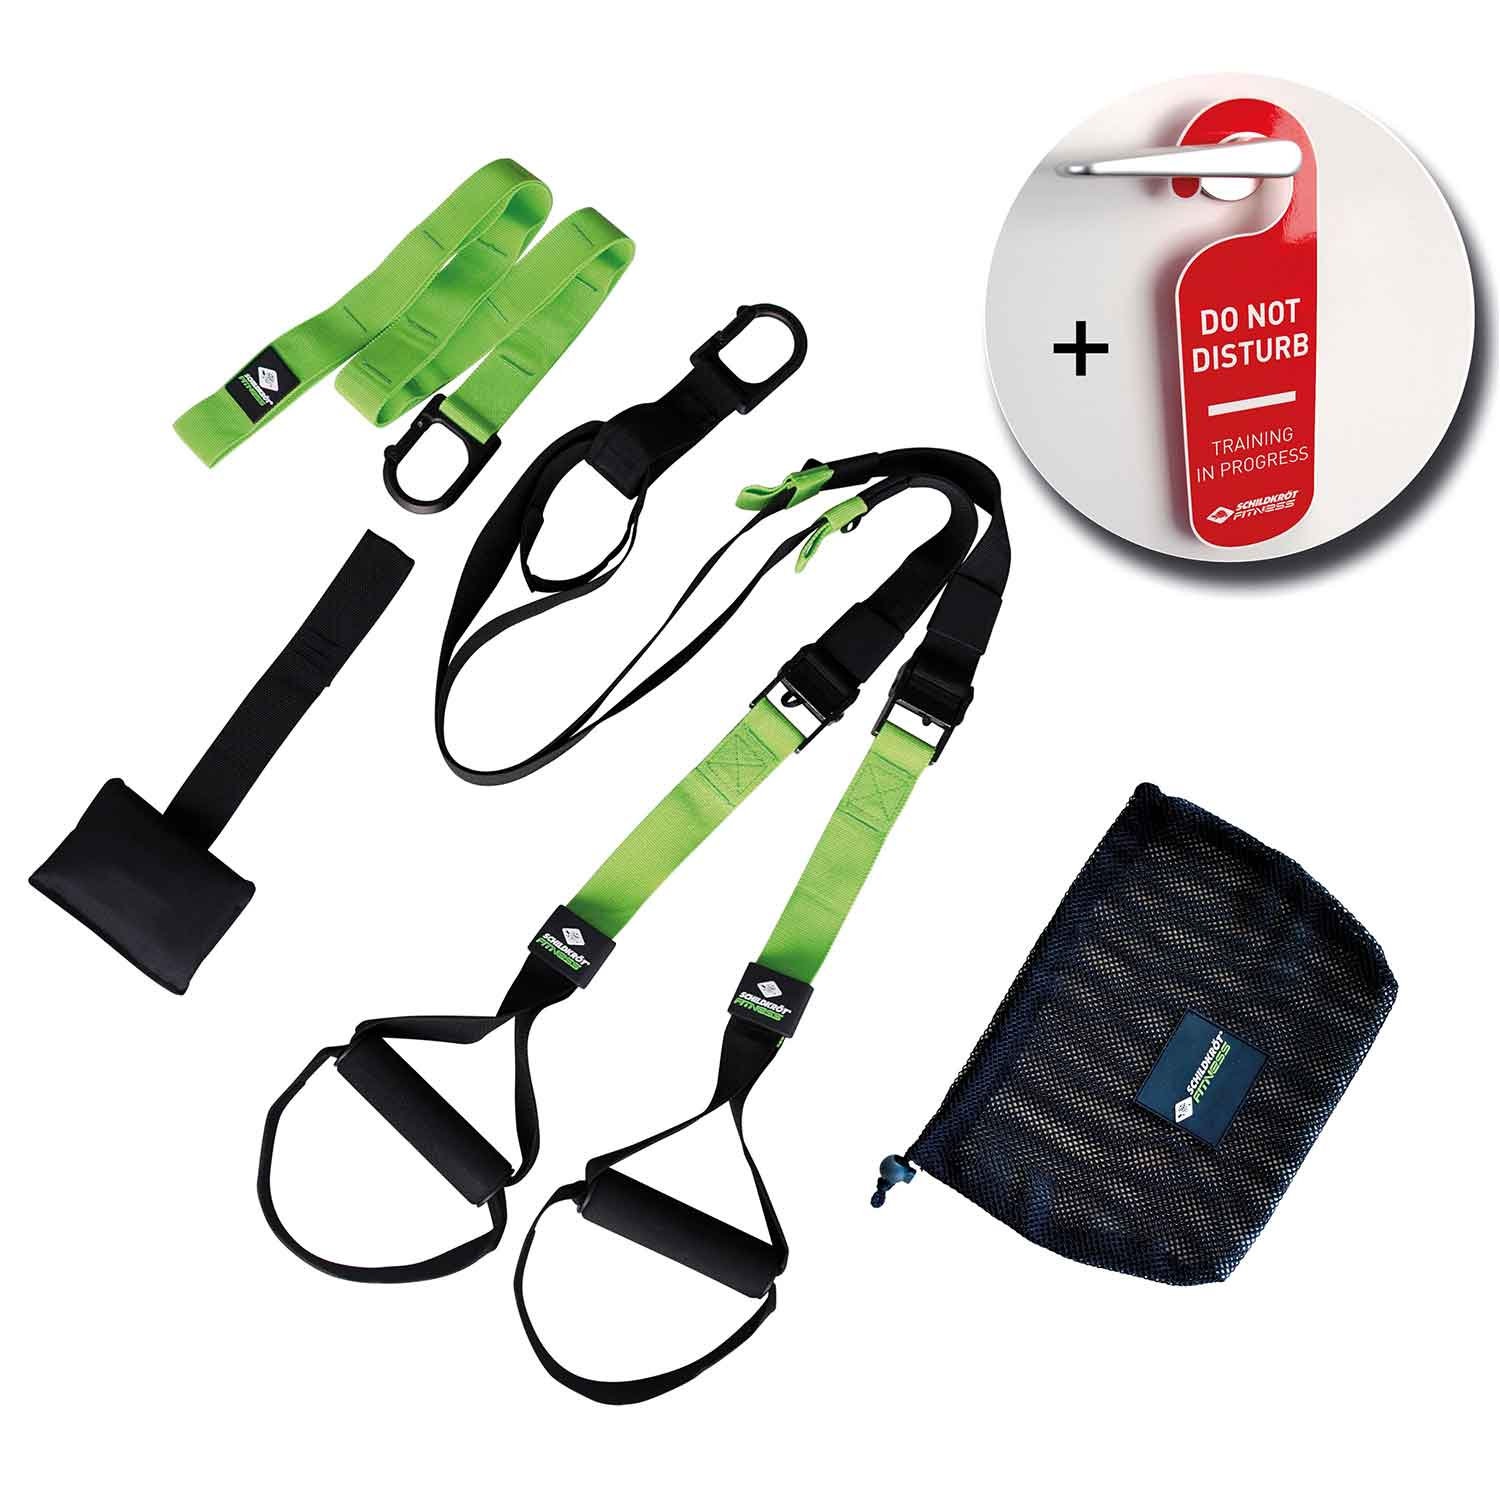 Sling Trainer Pro